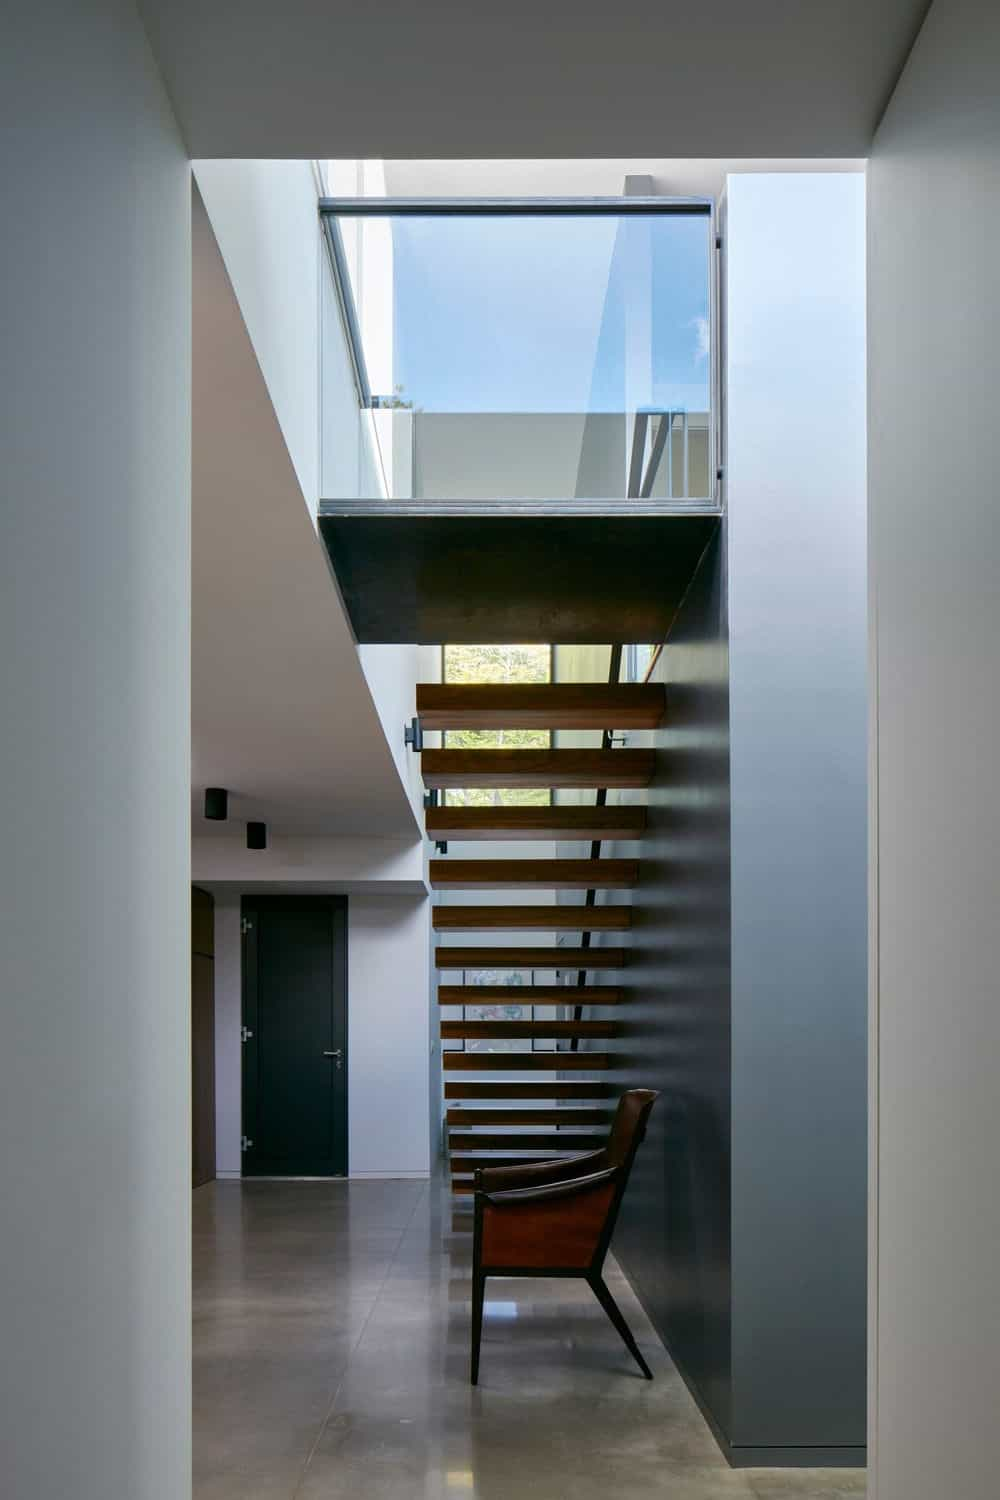 The home features modish walls and floors along with a staircase. Photo Credit: James Brittain